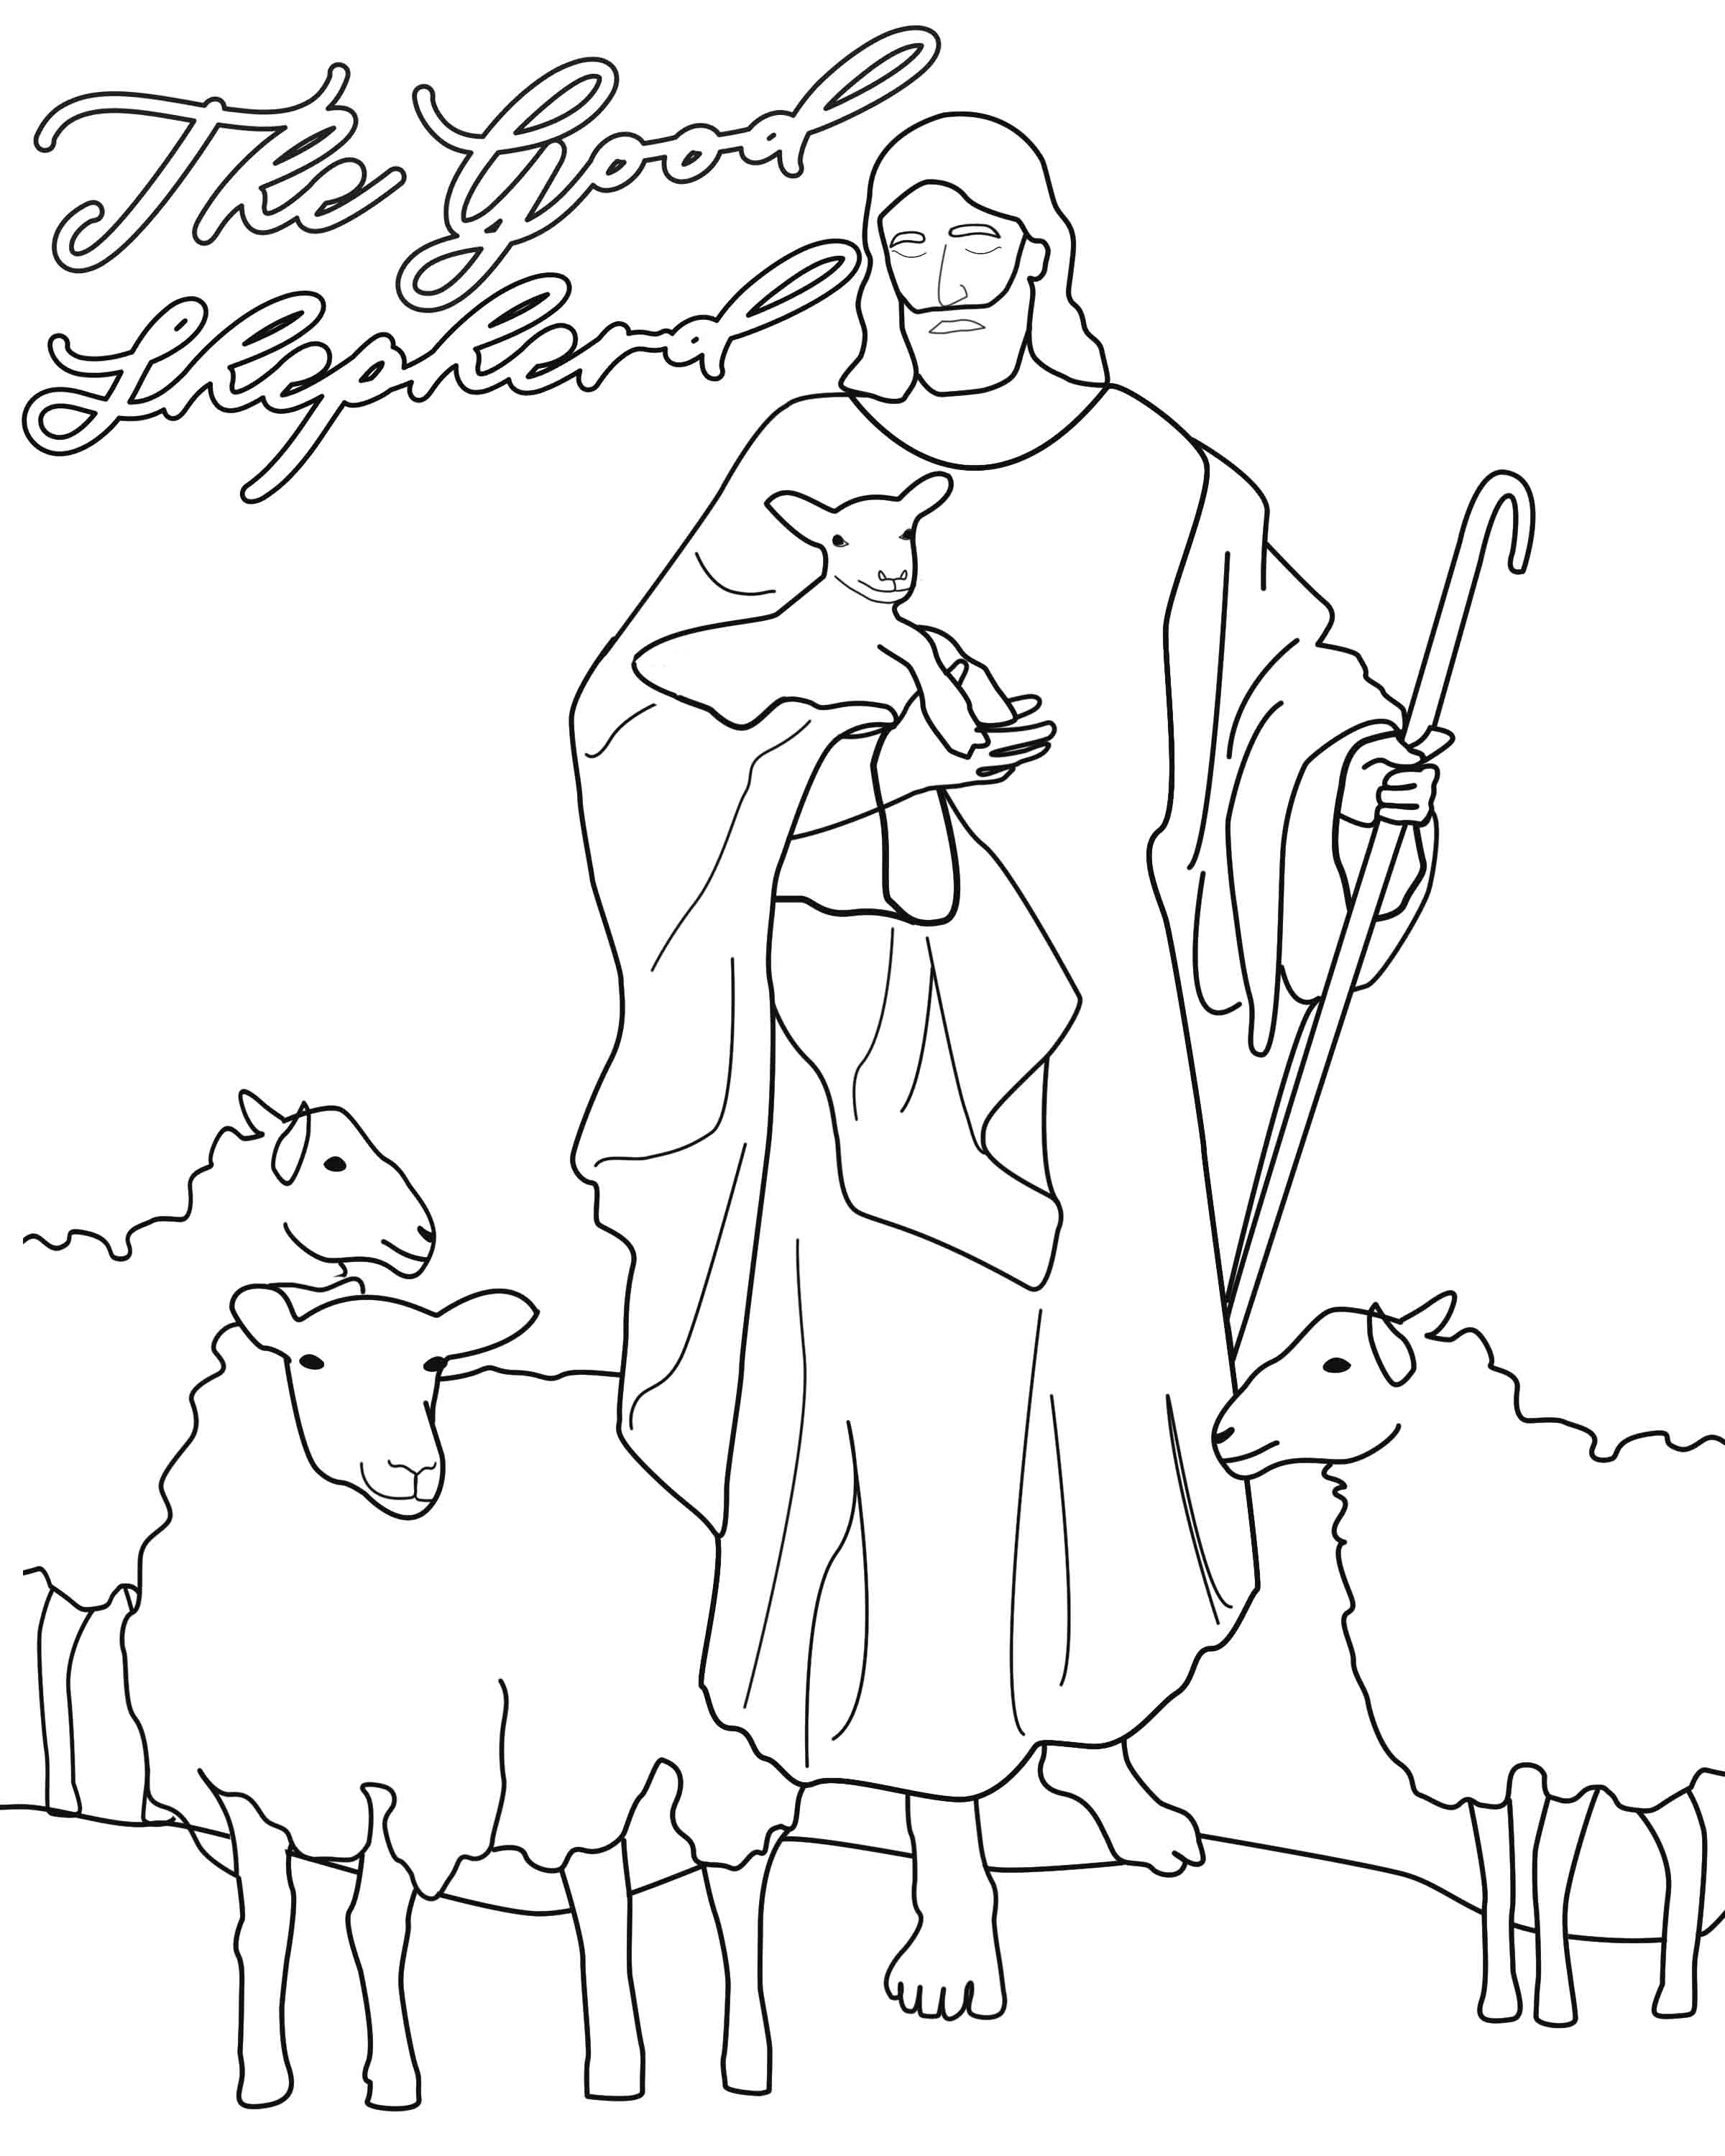 The Good Shepherd Coloring Page The Good Shepherd Story Come Follow Me April 29 May 5th John 7 10